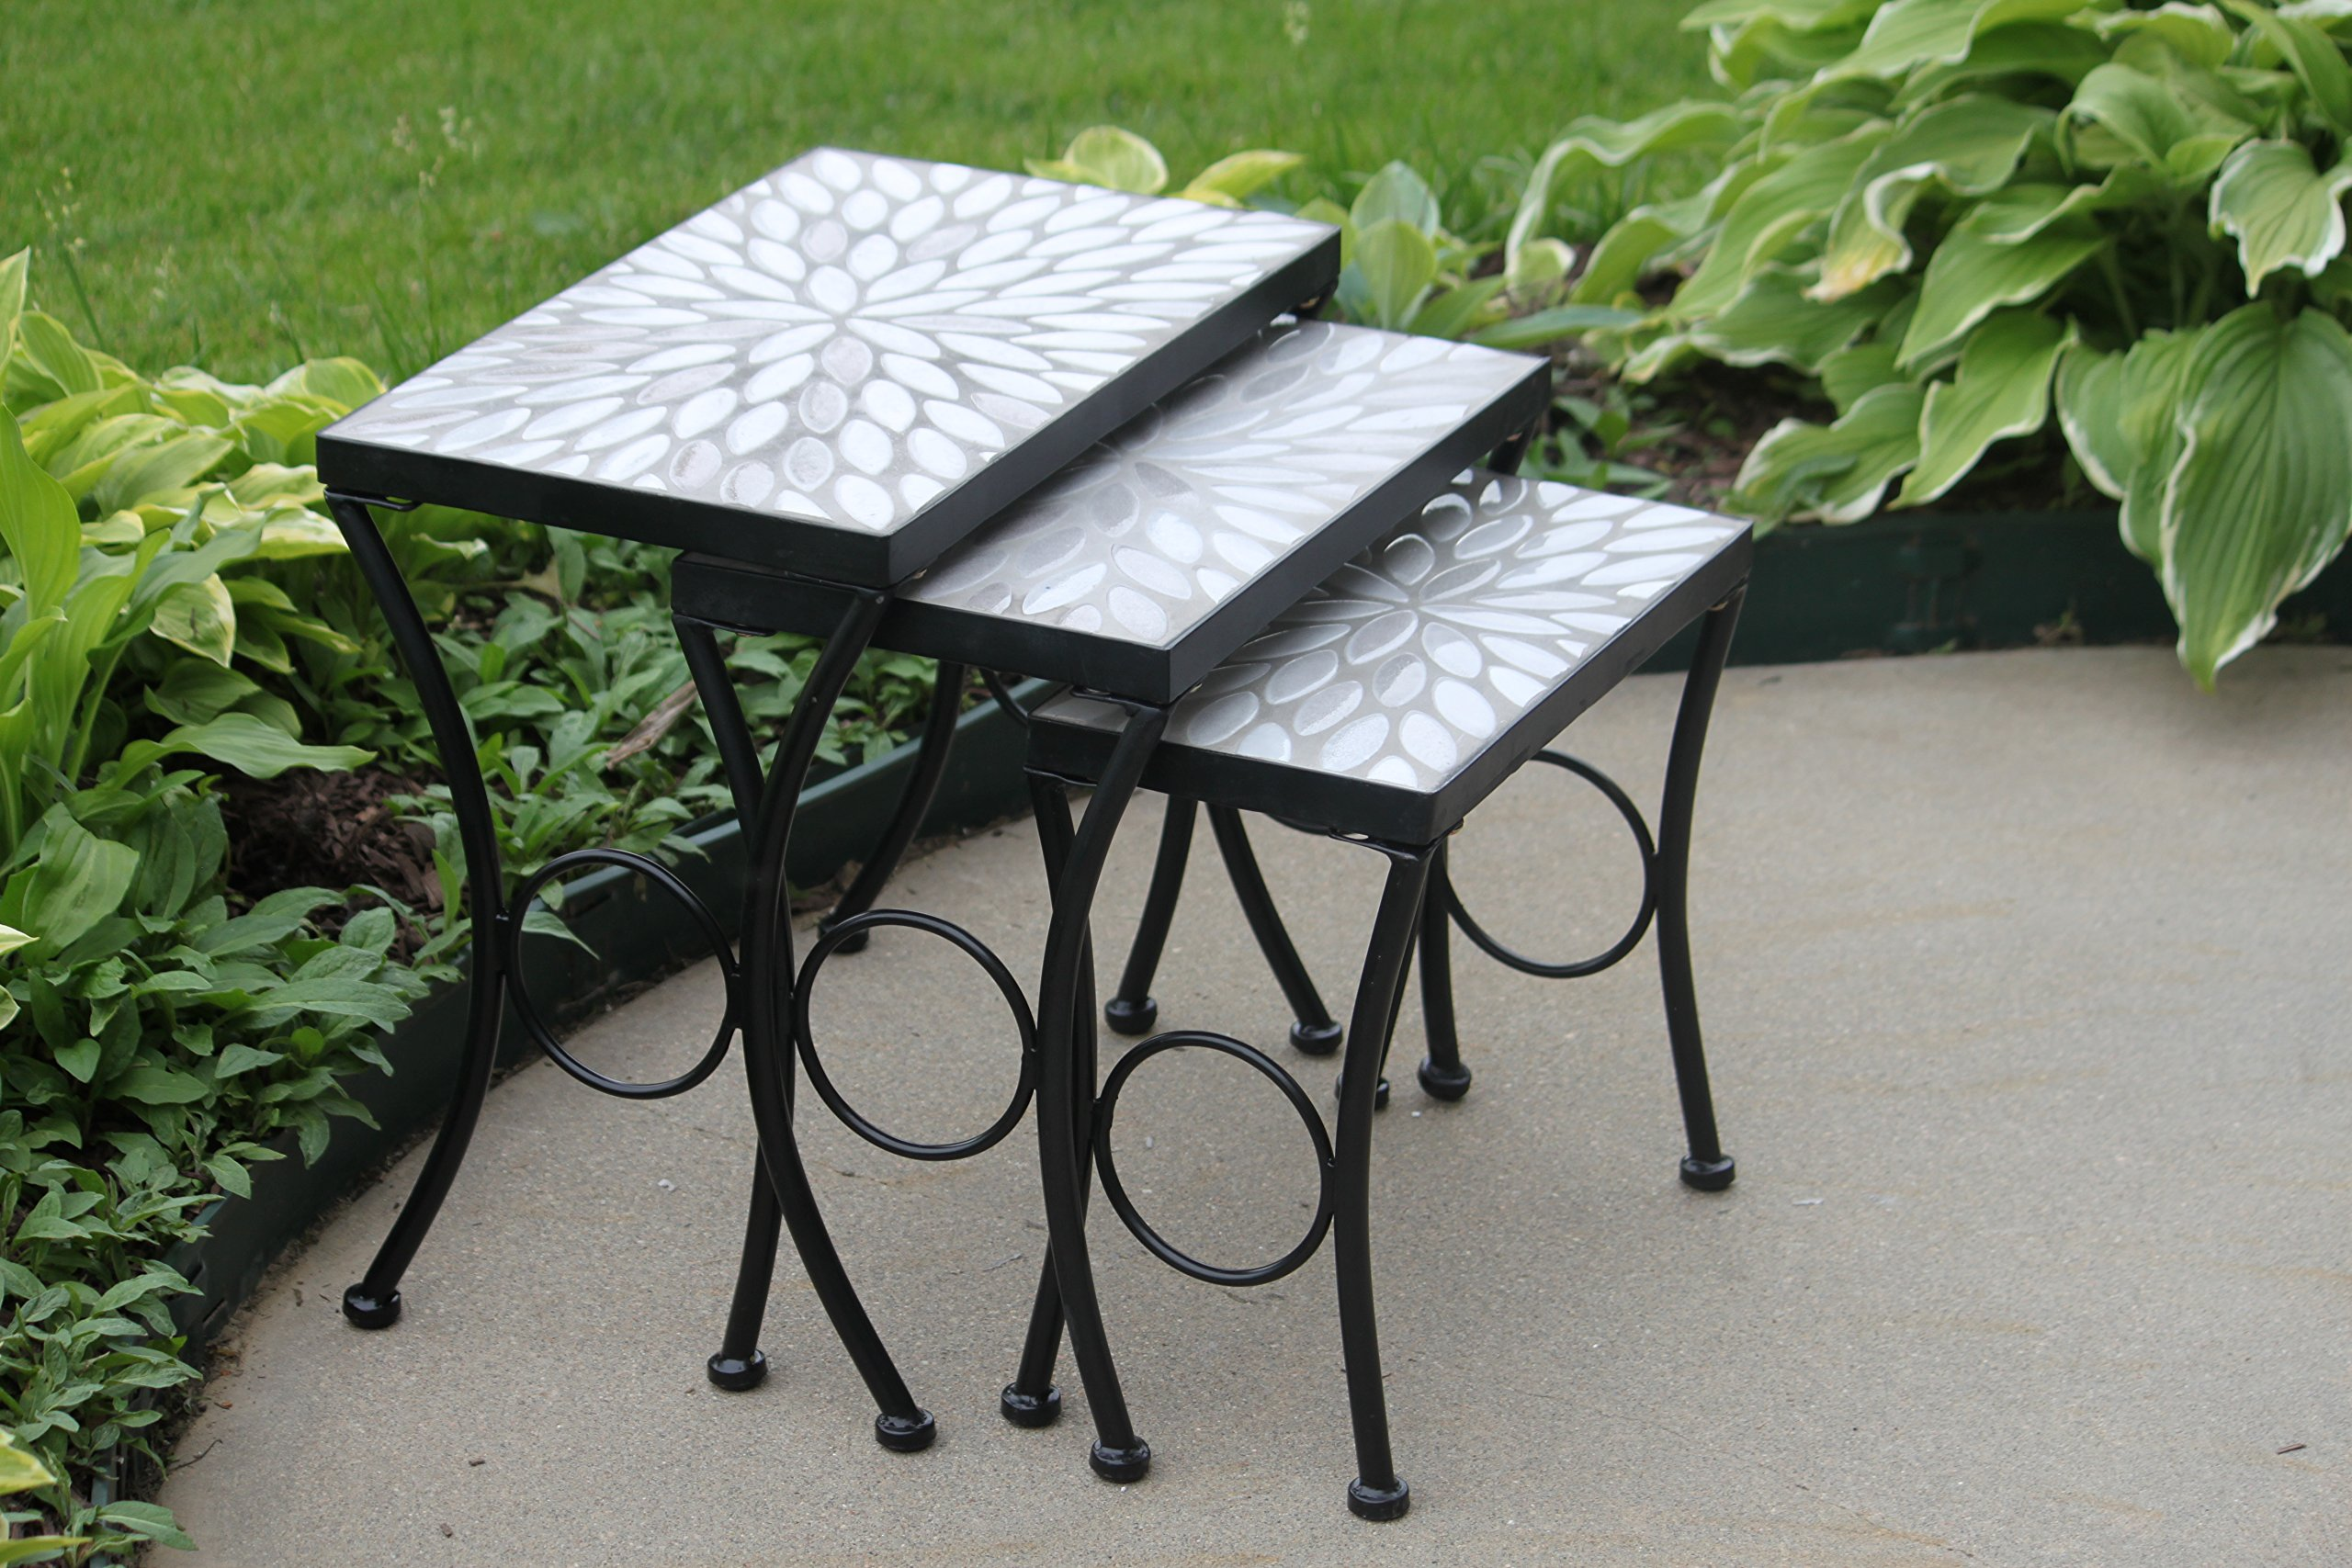 Set of 3 Cement Oval Mosaic Tile Top Accent Side Tables - Nesting by Pebble Lane Living